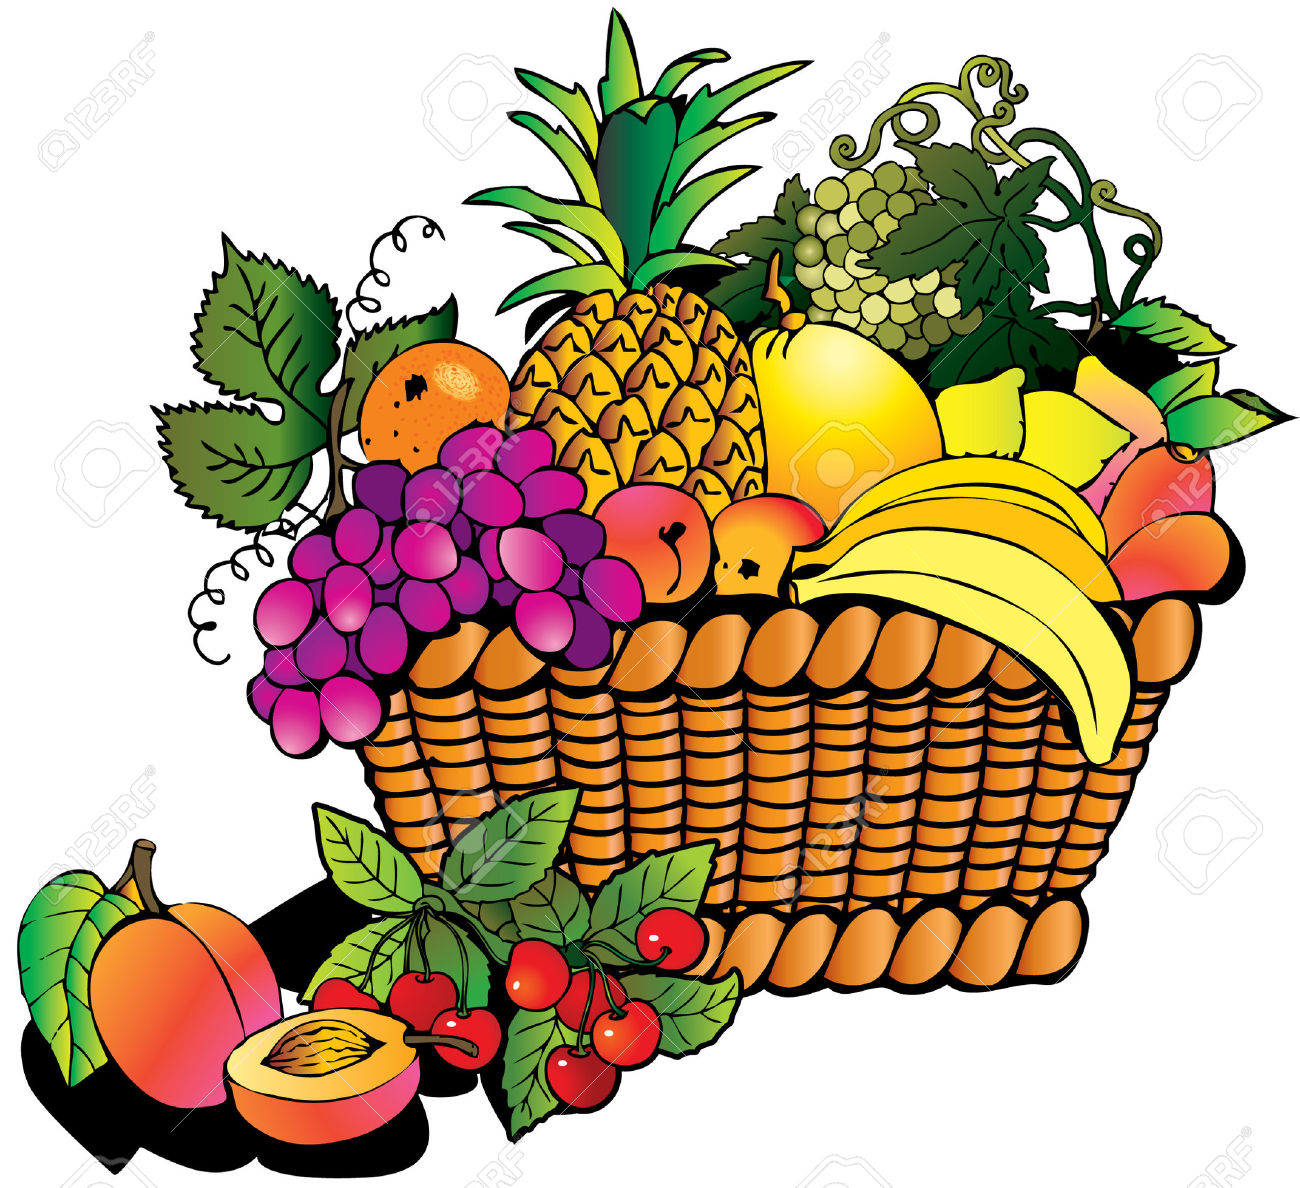 Fruitbasket clipart banner freeuse library 62+ Fruit Basket Clipart | ClipartLook banner freeuse library